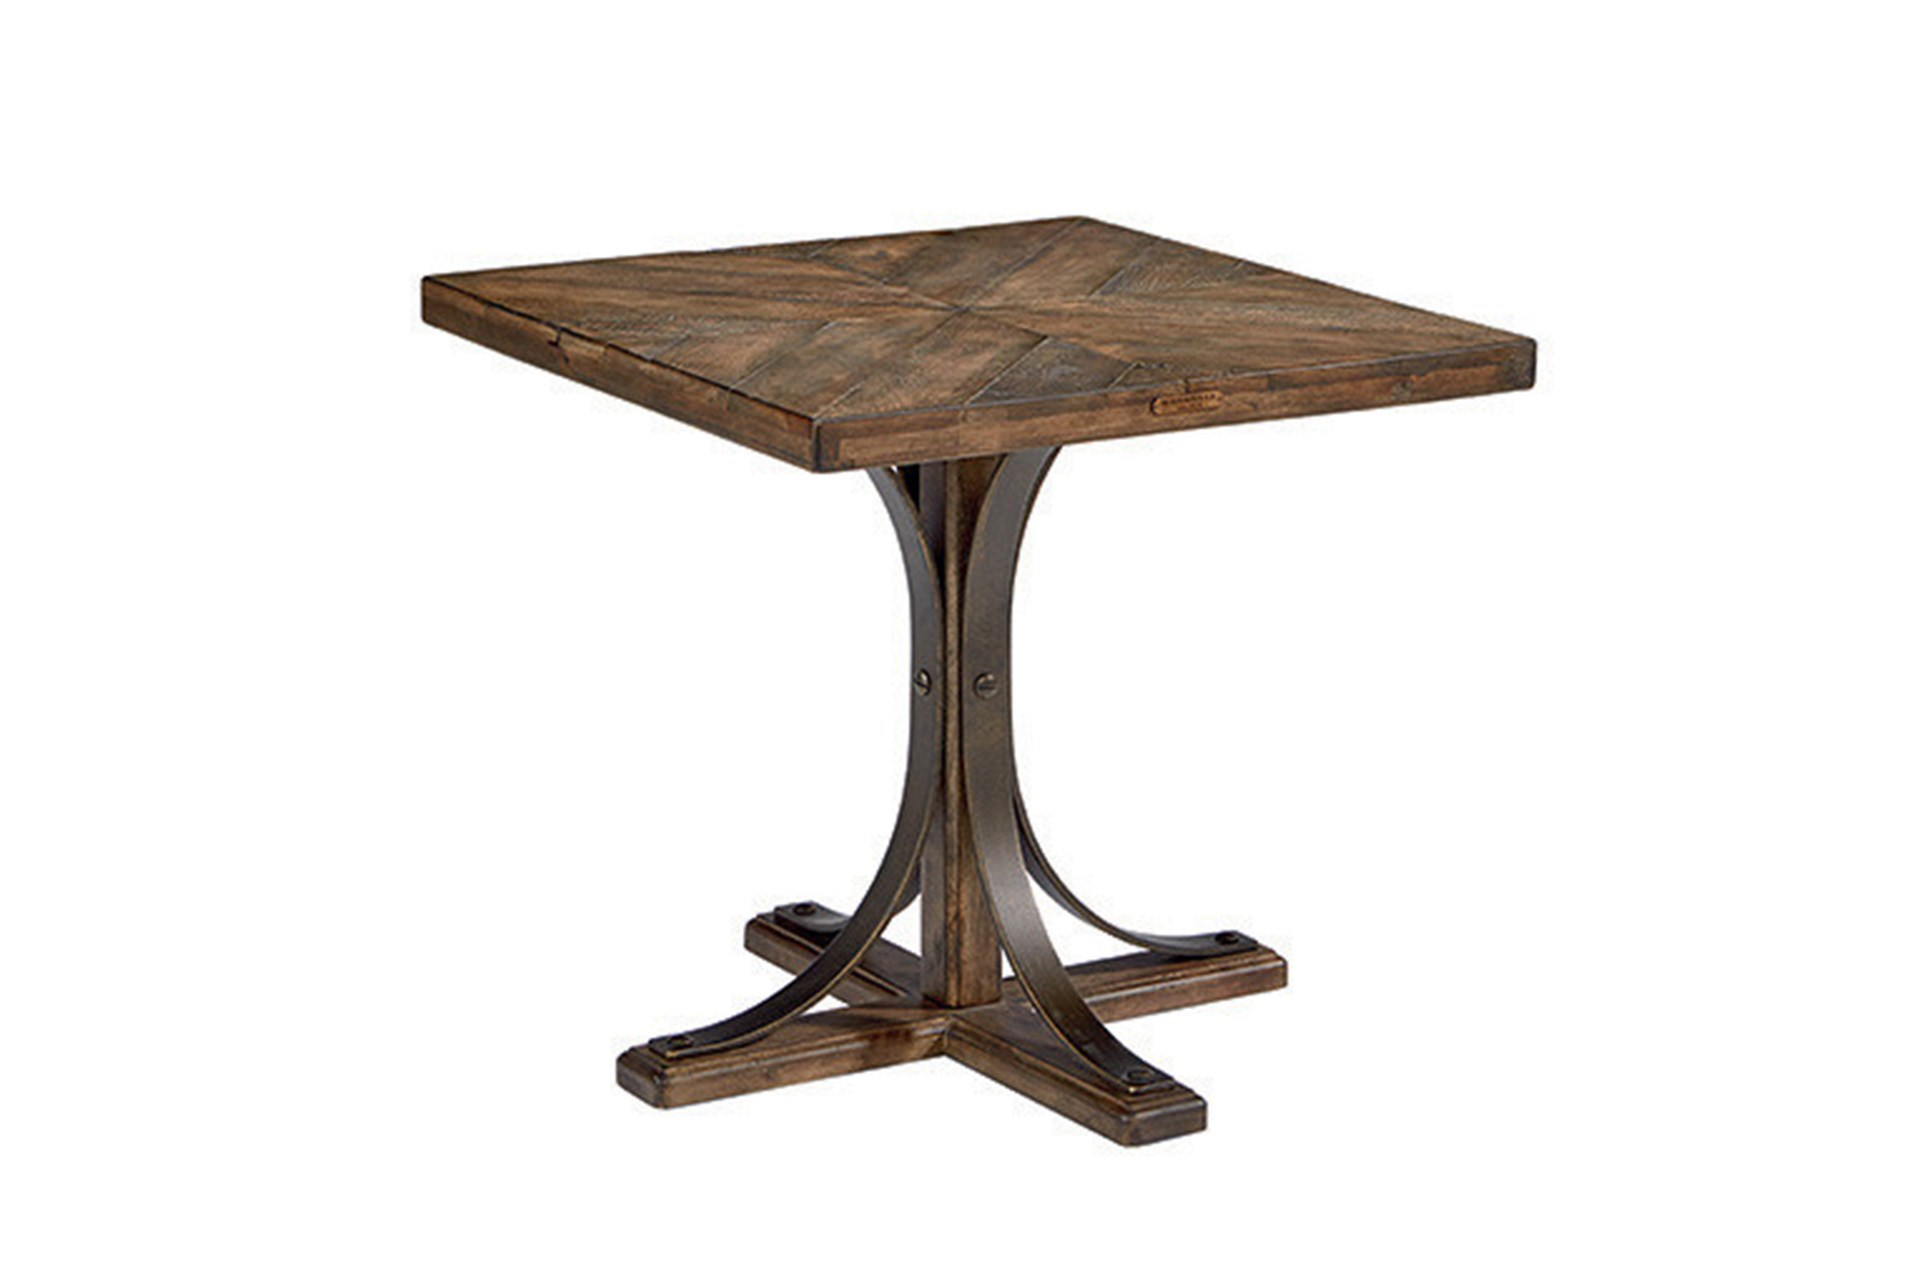 Magnolia Home Iron Trestle End Table By Joanna Gaines Qty 1 Has Been Successfully Added To Your Cart